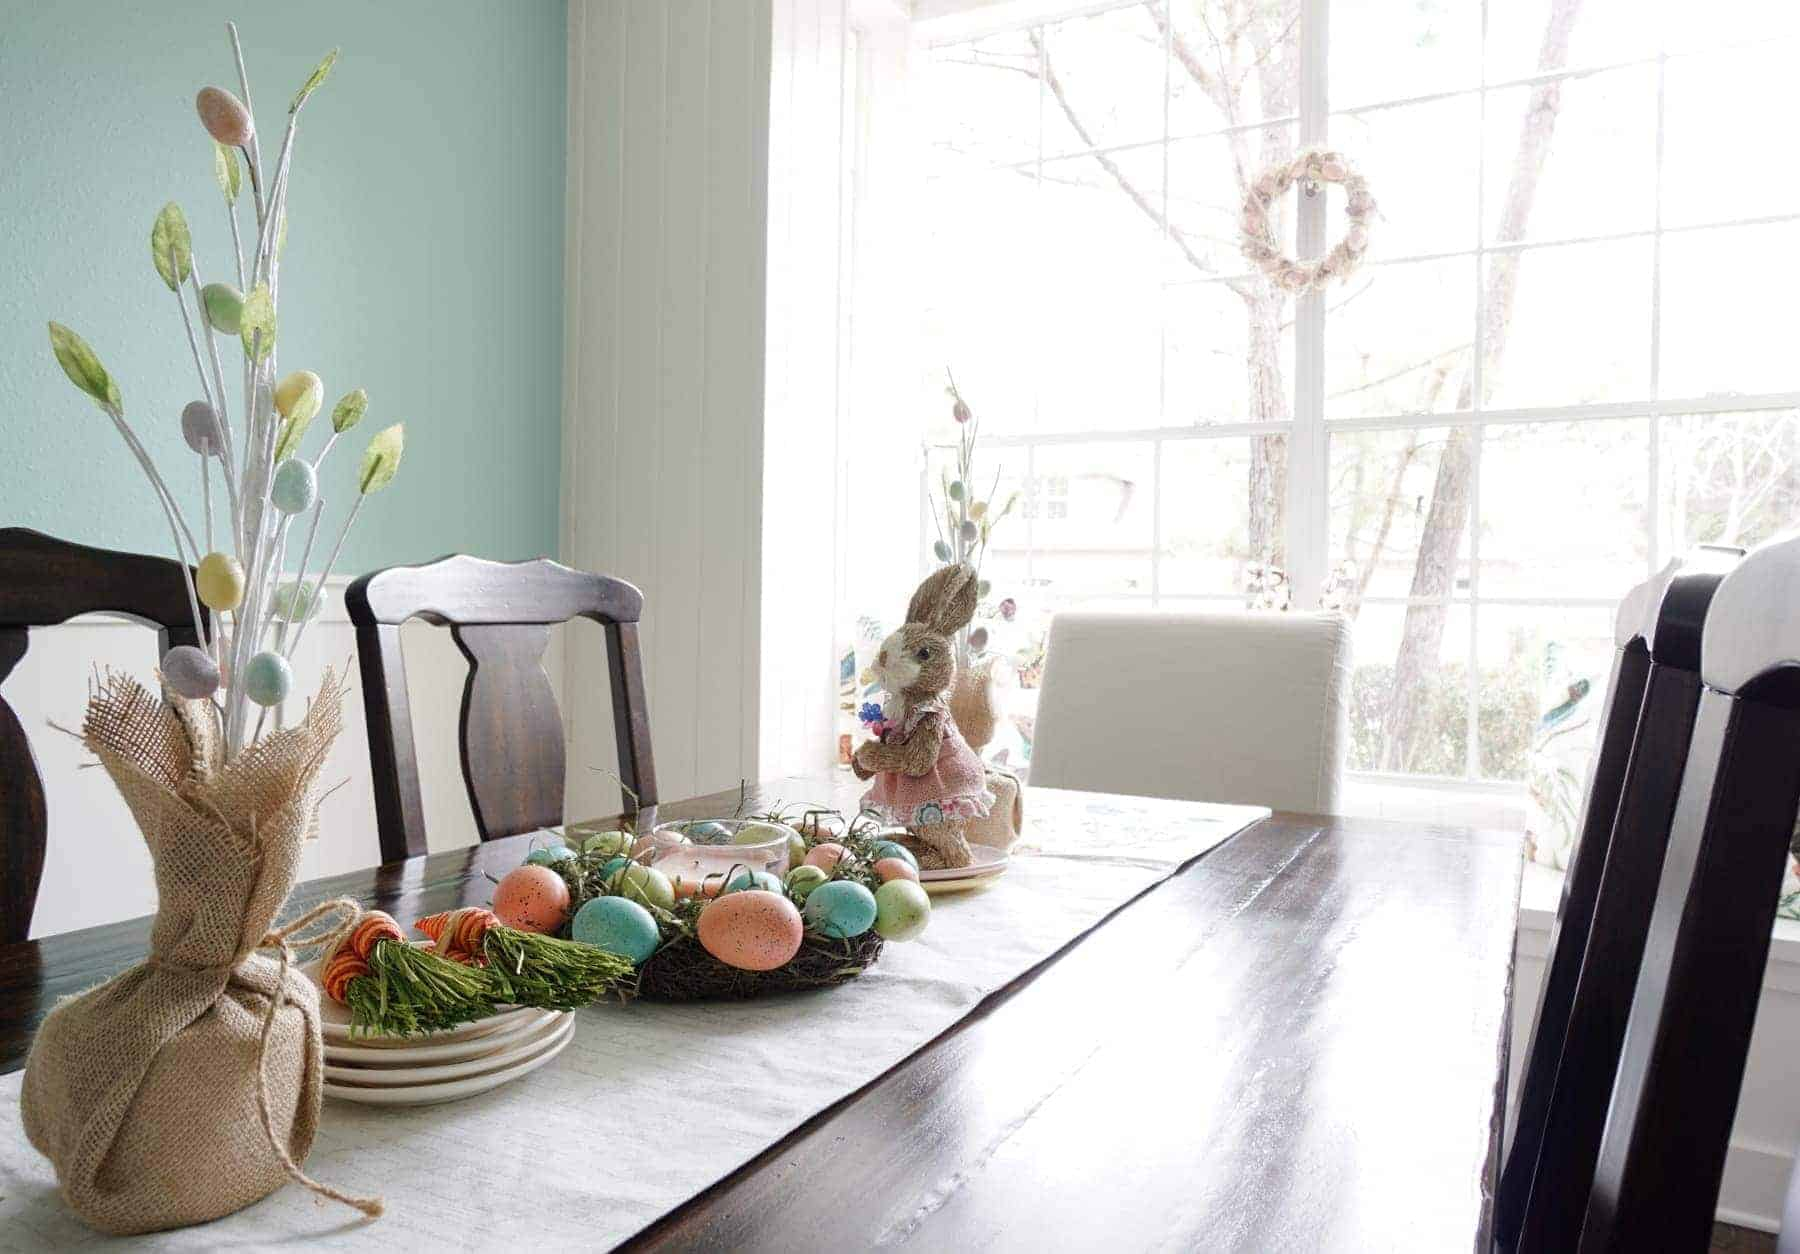 Colored Egg Centerpiece With Bunny and Egg Trees on Dining Table